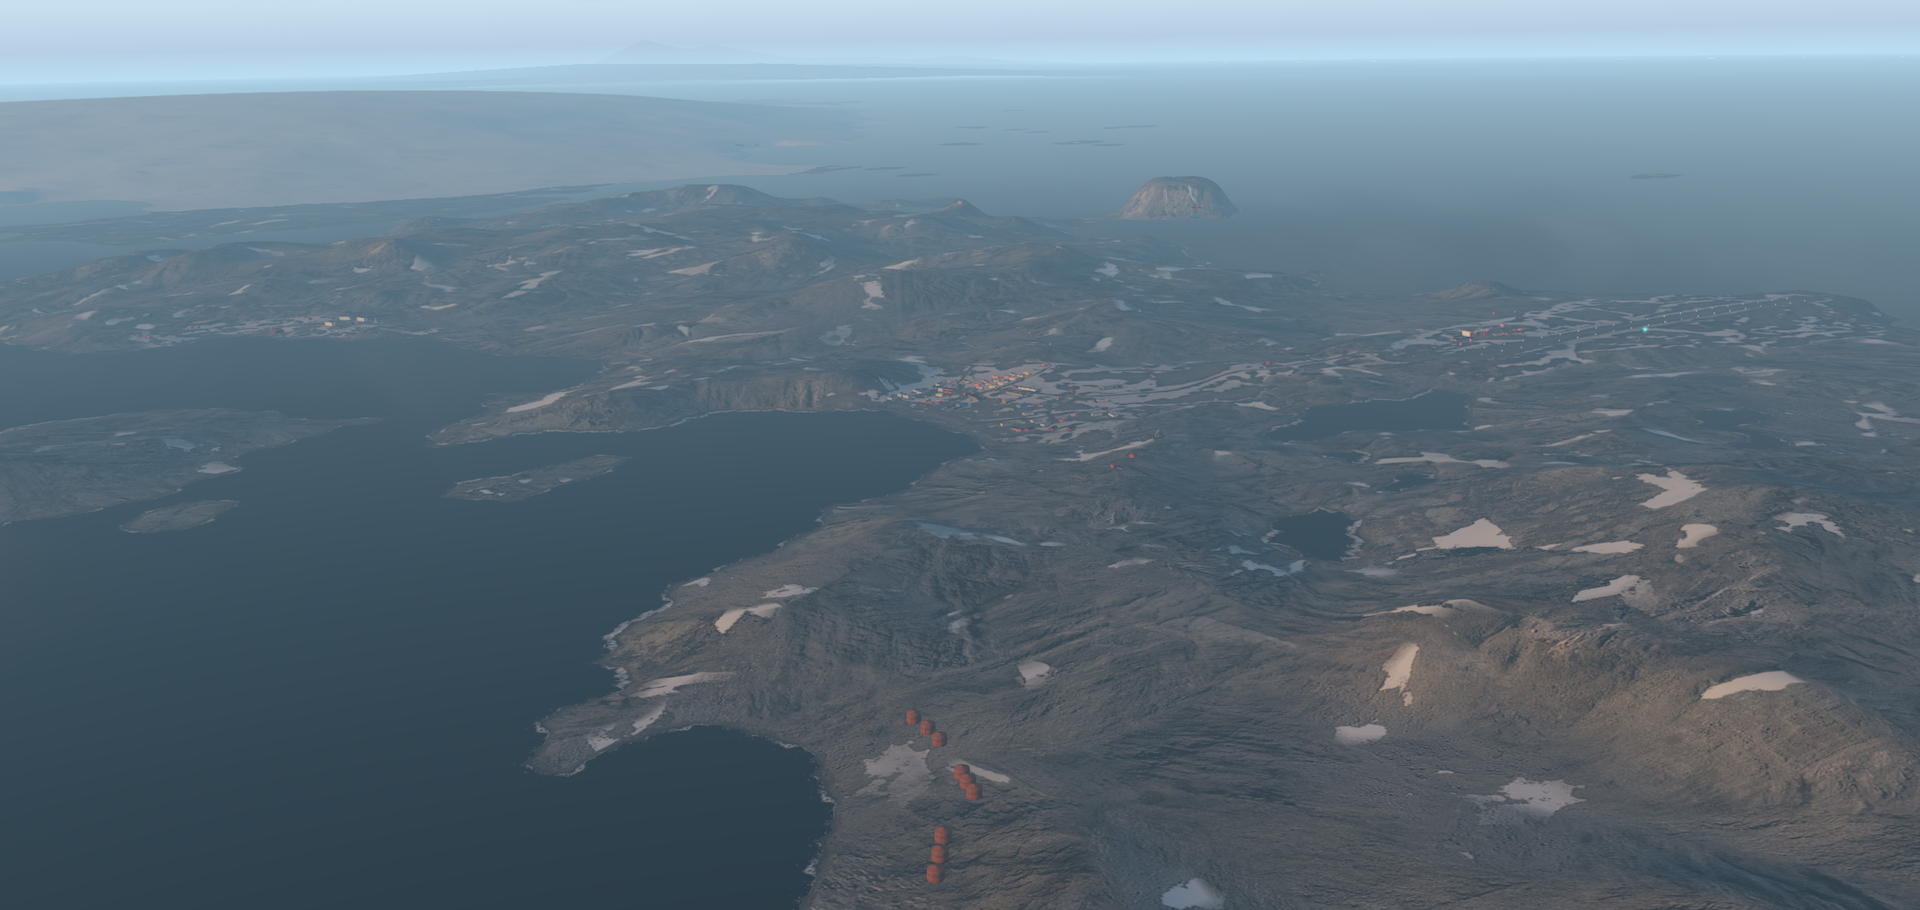 maps2xplane_feature_a4xp_scenery_v1.png